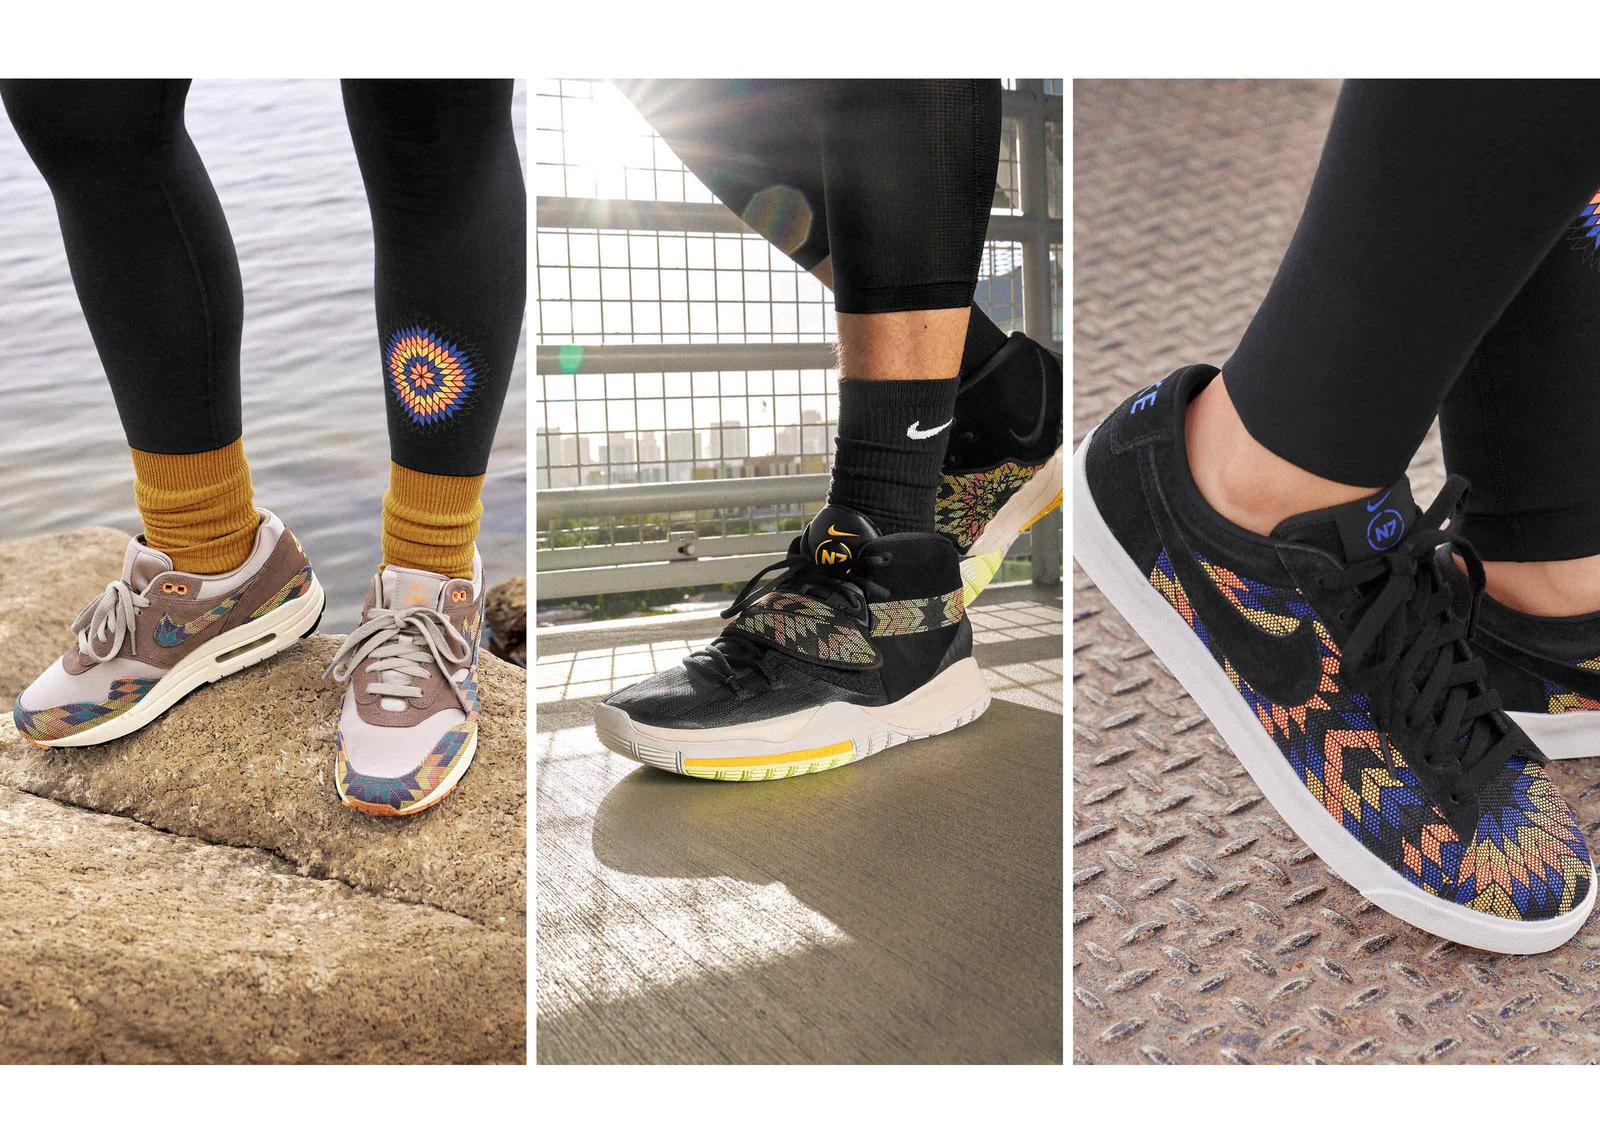 Nike Winter N7 Collection1